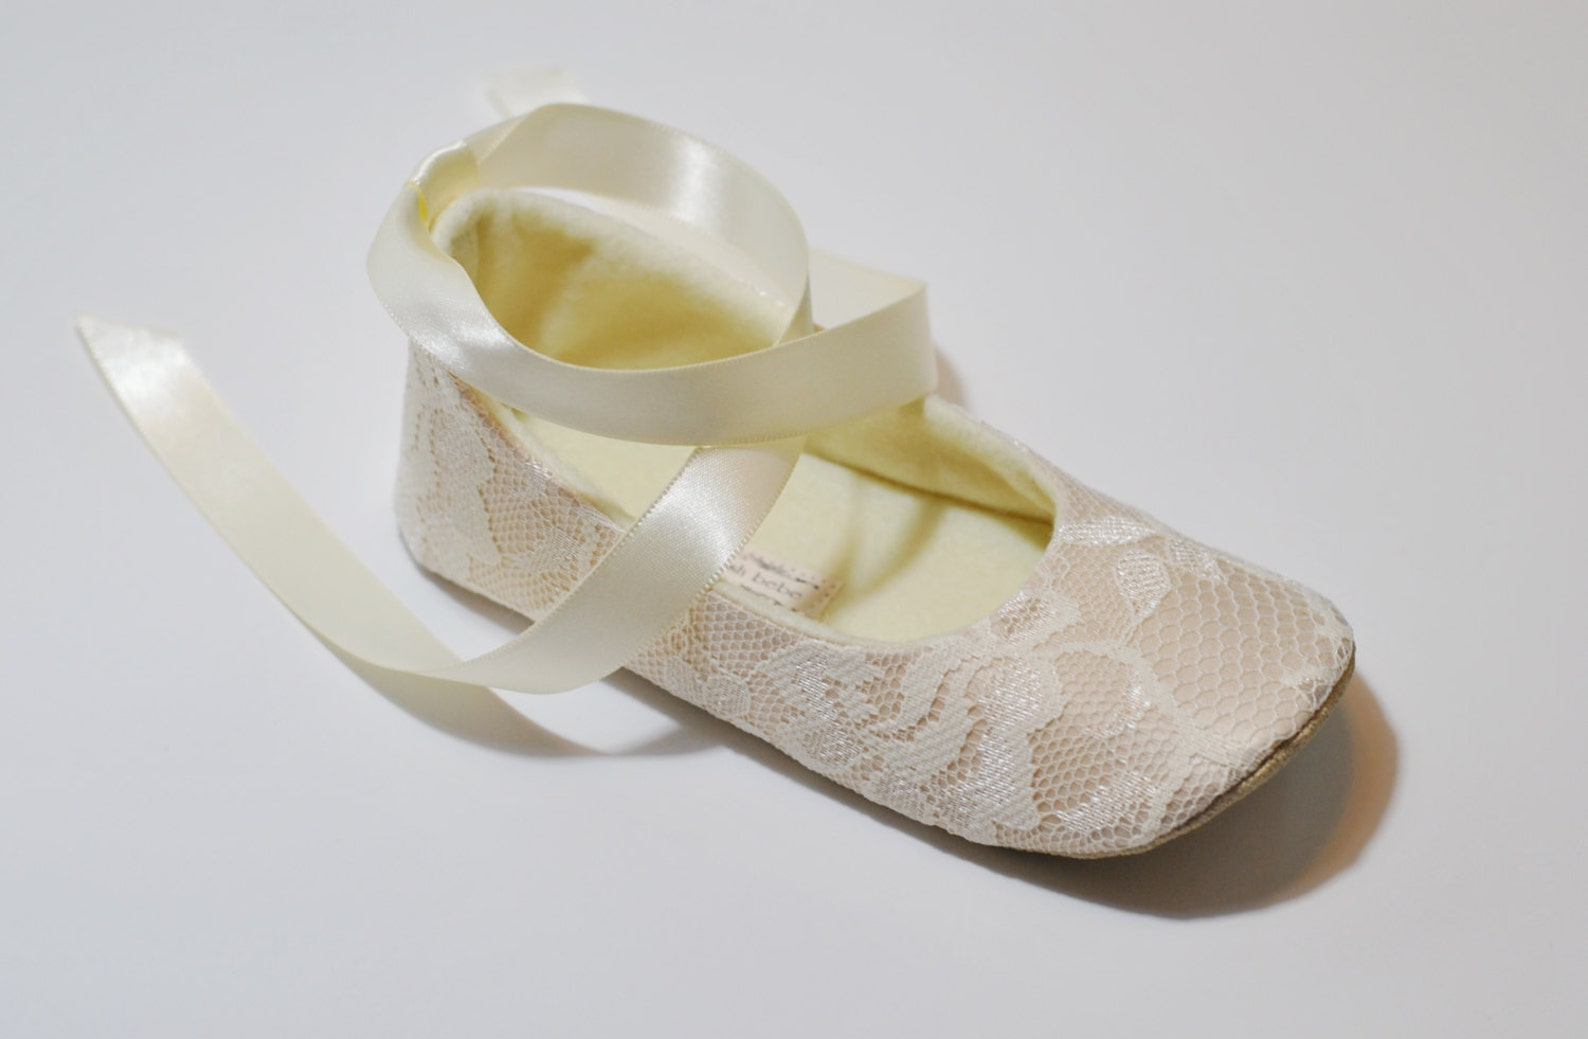 ivory or white or nude lace ballet slippers - flower girl shoes - baby shoes - toddler girl shoes - christening - baptism - layl